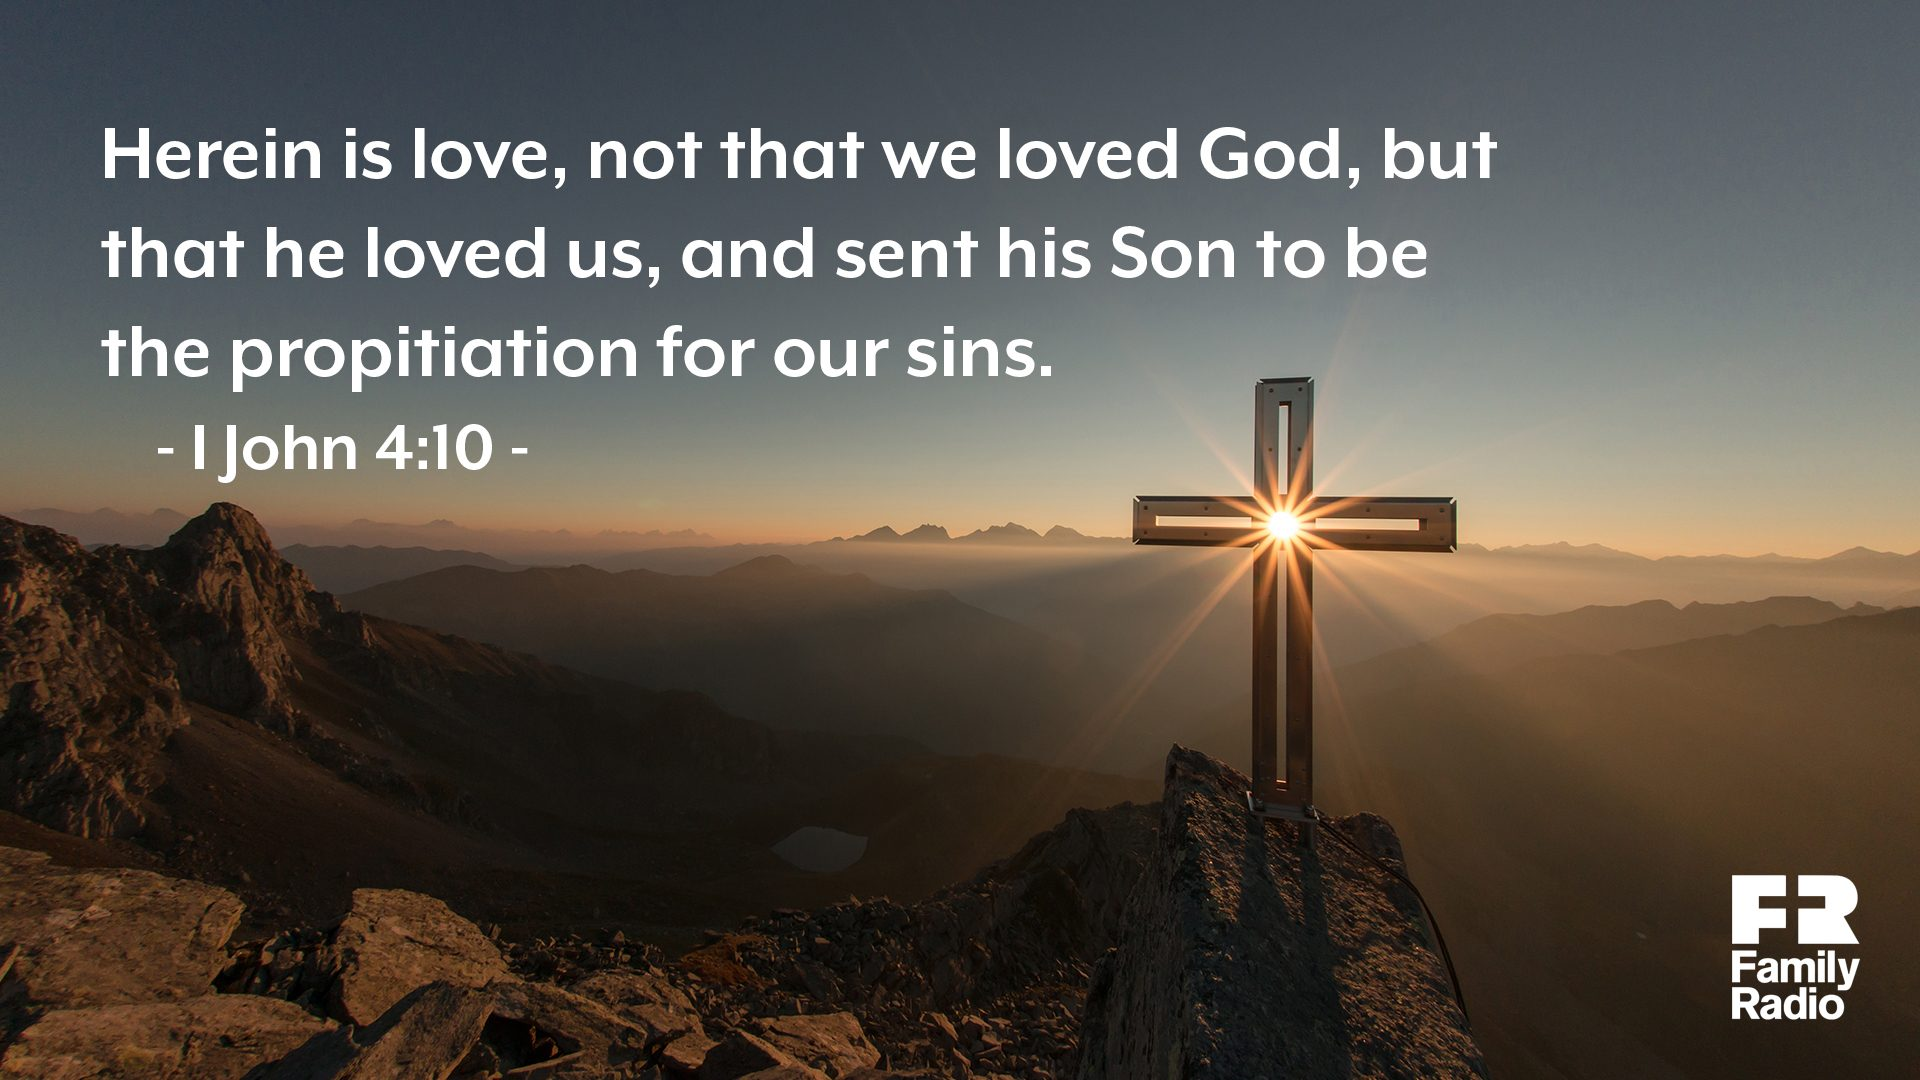 """Herein is love, not that we loved God, but that he loved us, and sent his Son to be the propitiation for our sins."""